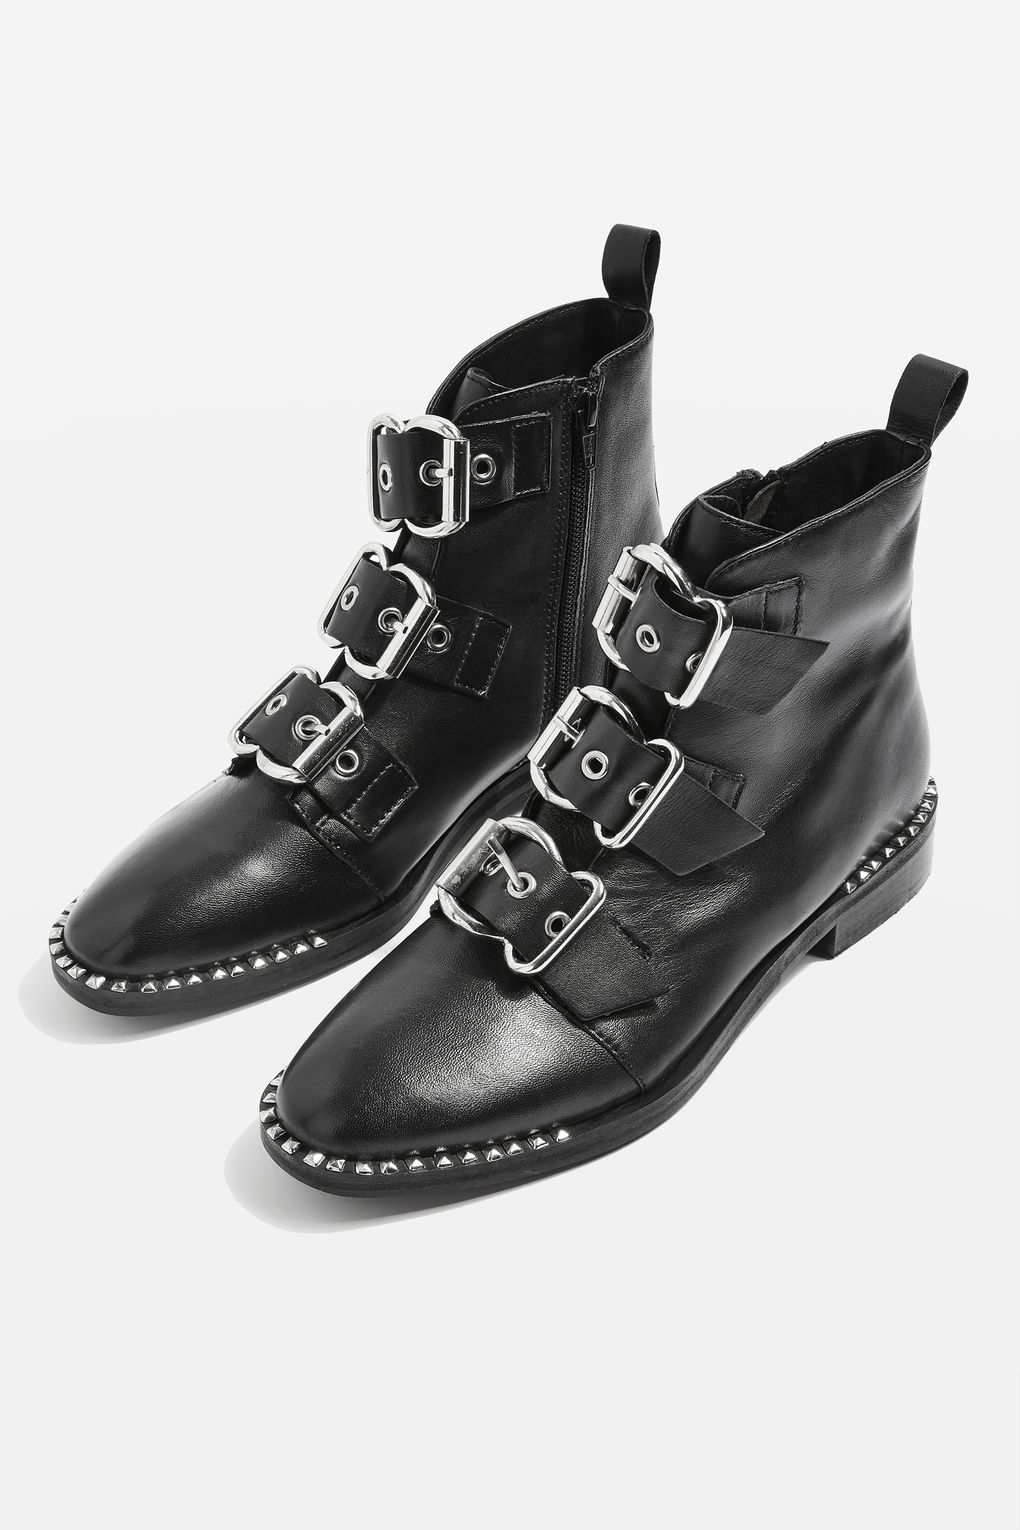 5063dd13feb7 ALFIE Buckle Ankle Boots - Shoes